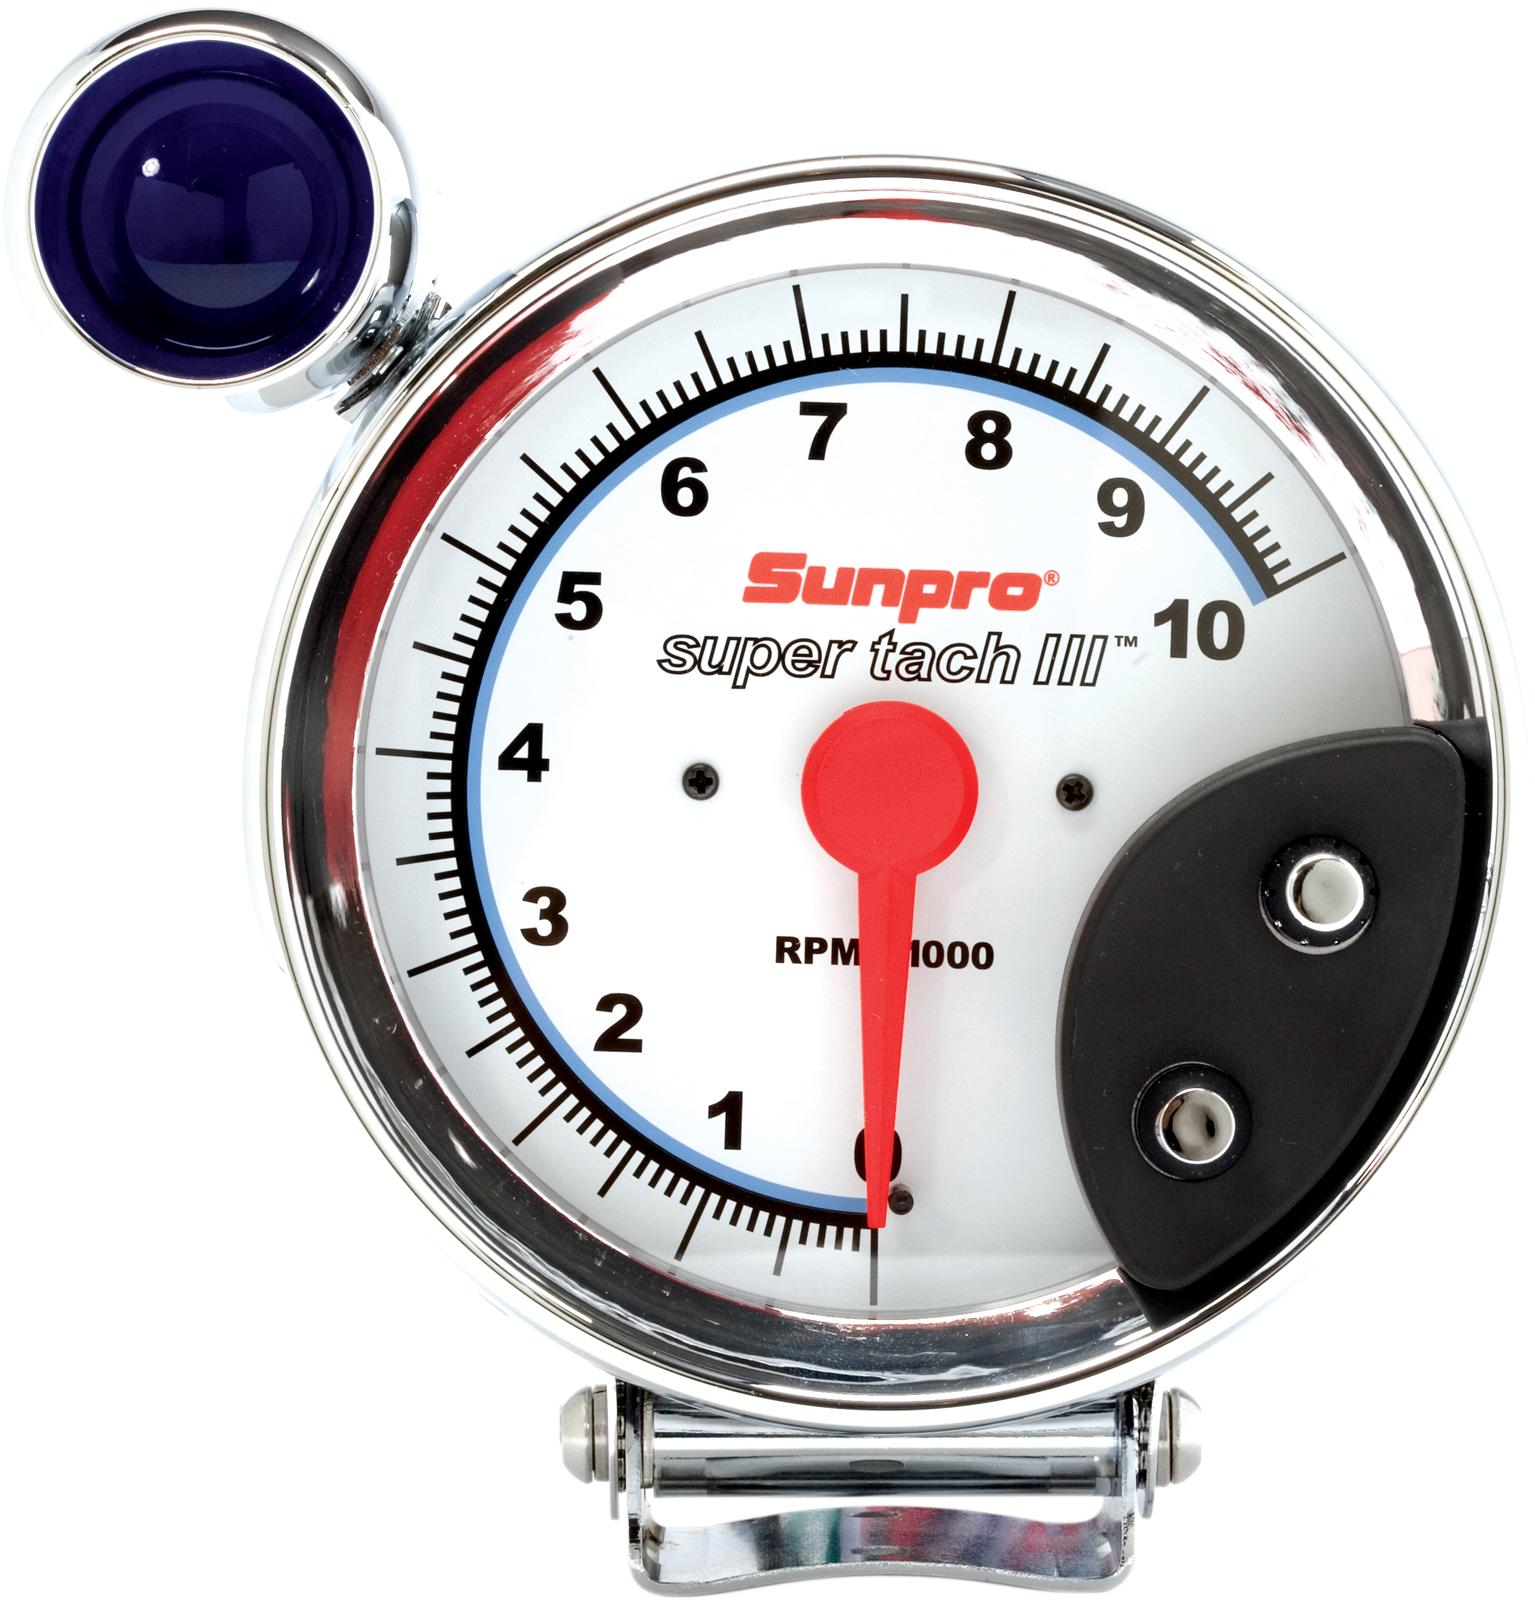 hight resolution of sunpro tach with shift light wiring schema diagram database sunpro super tach gauges wiring